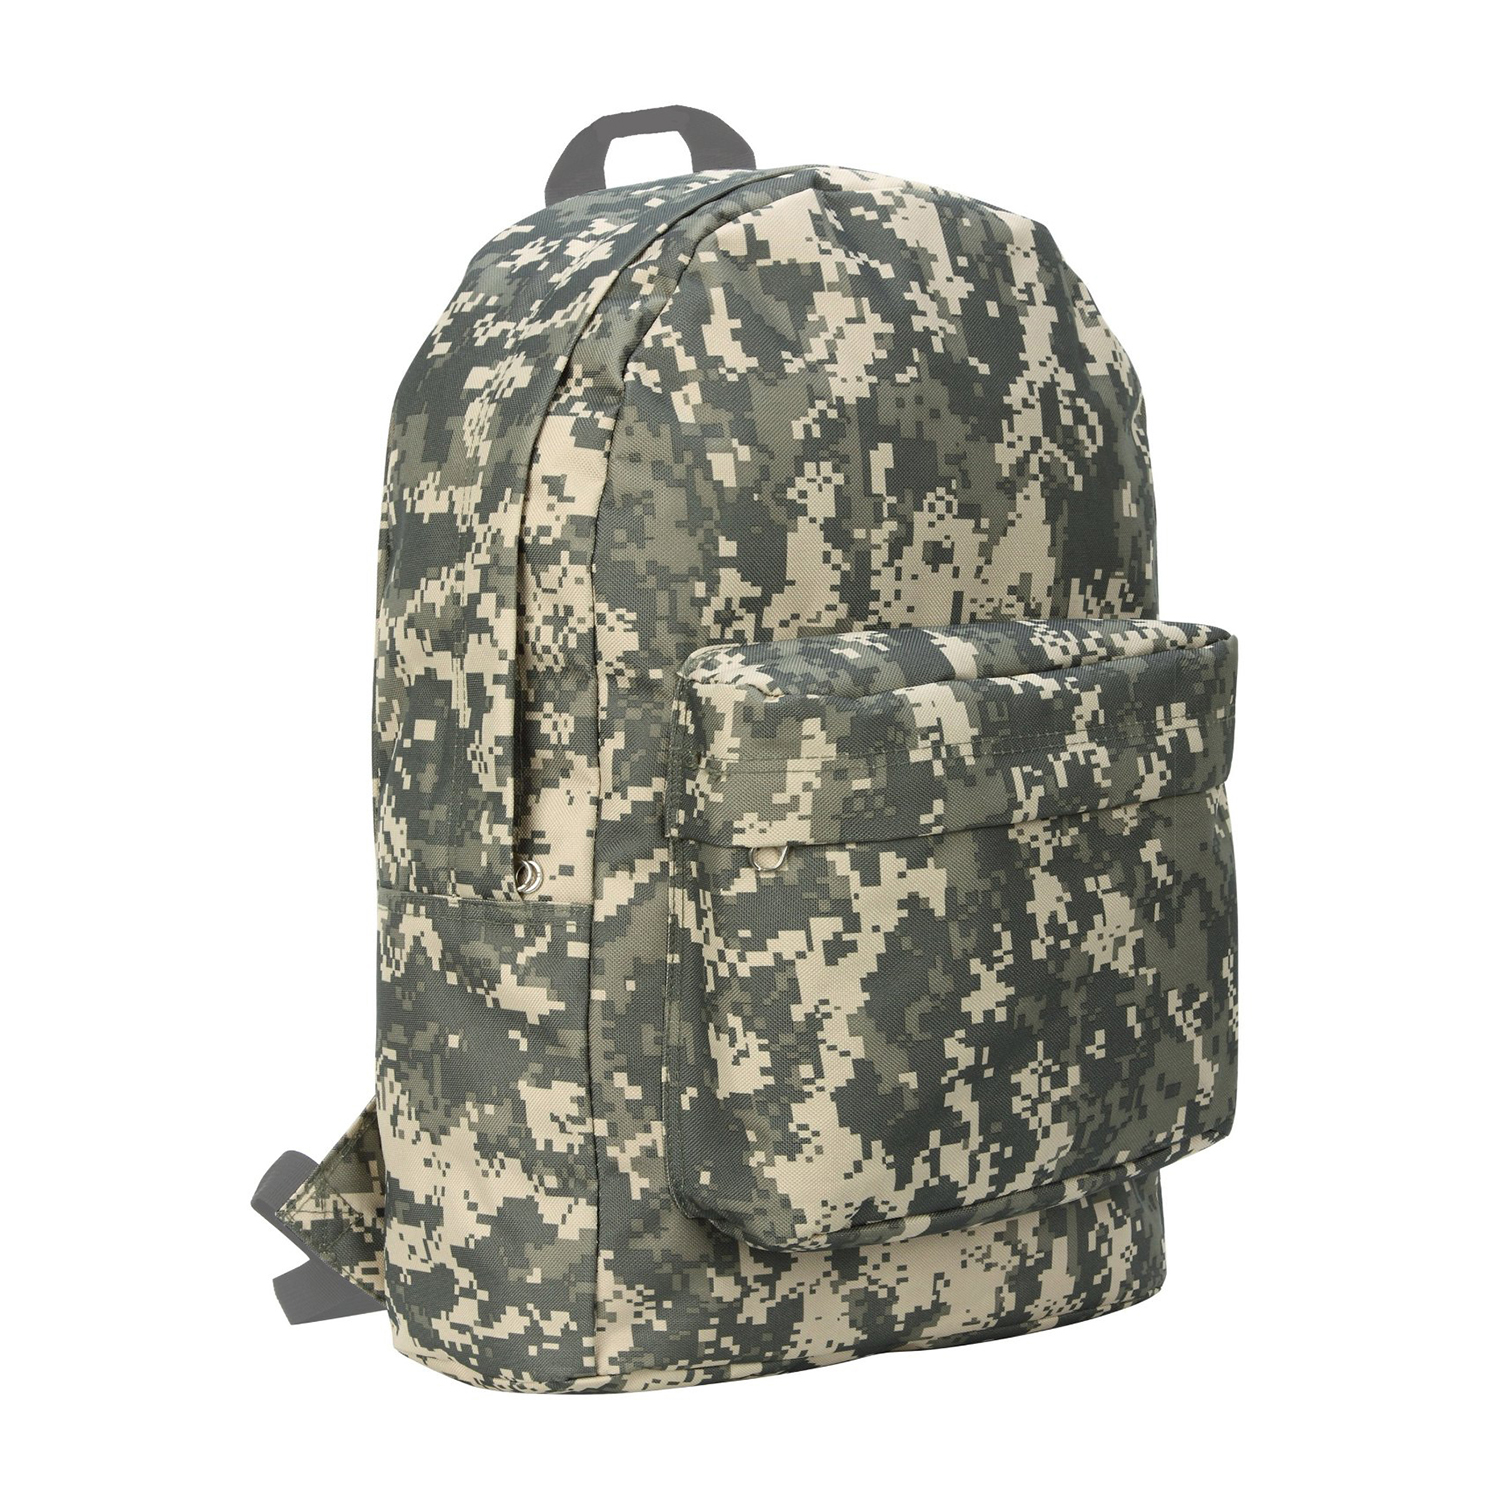 Every Day Carry Tactical Defense School Bag Canvas Backpack